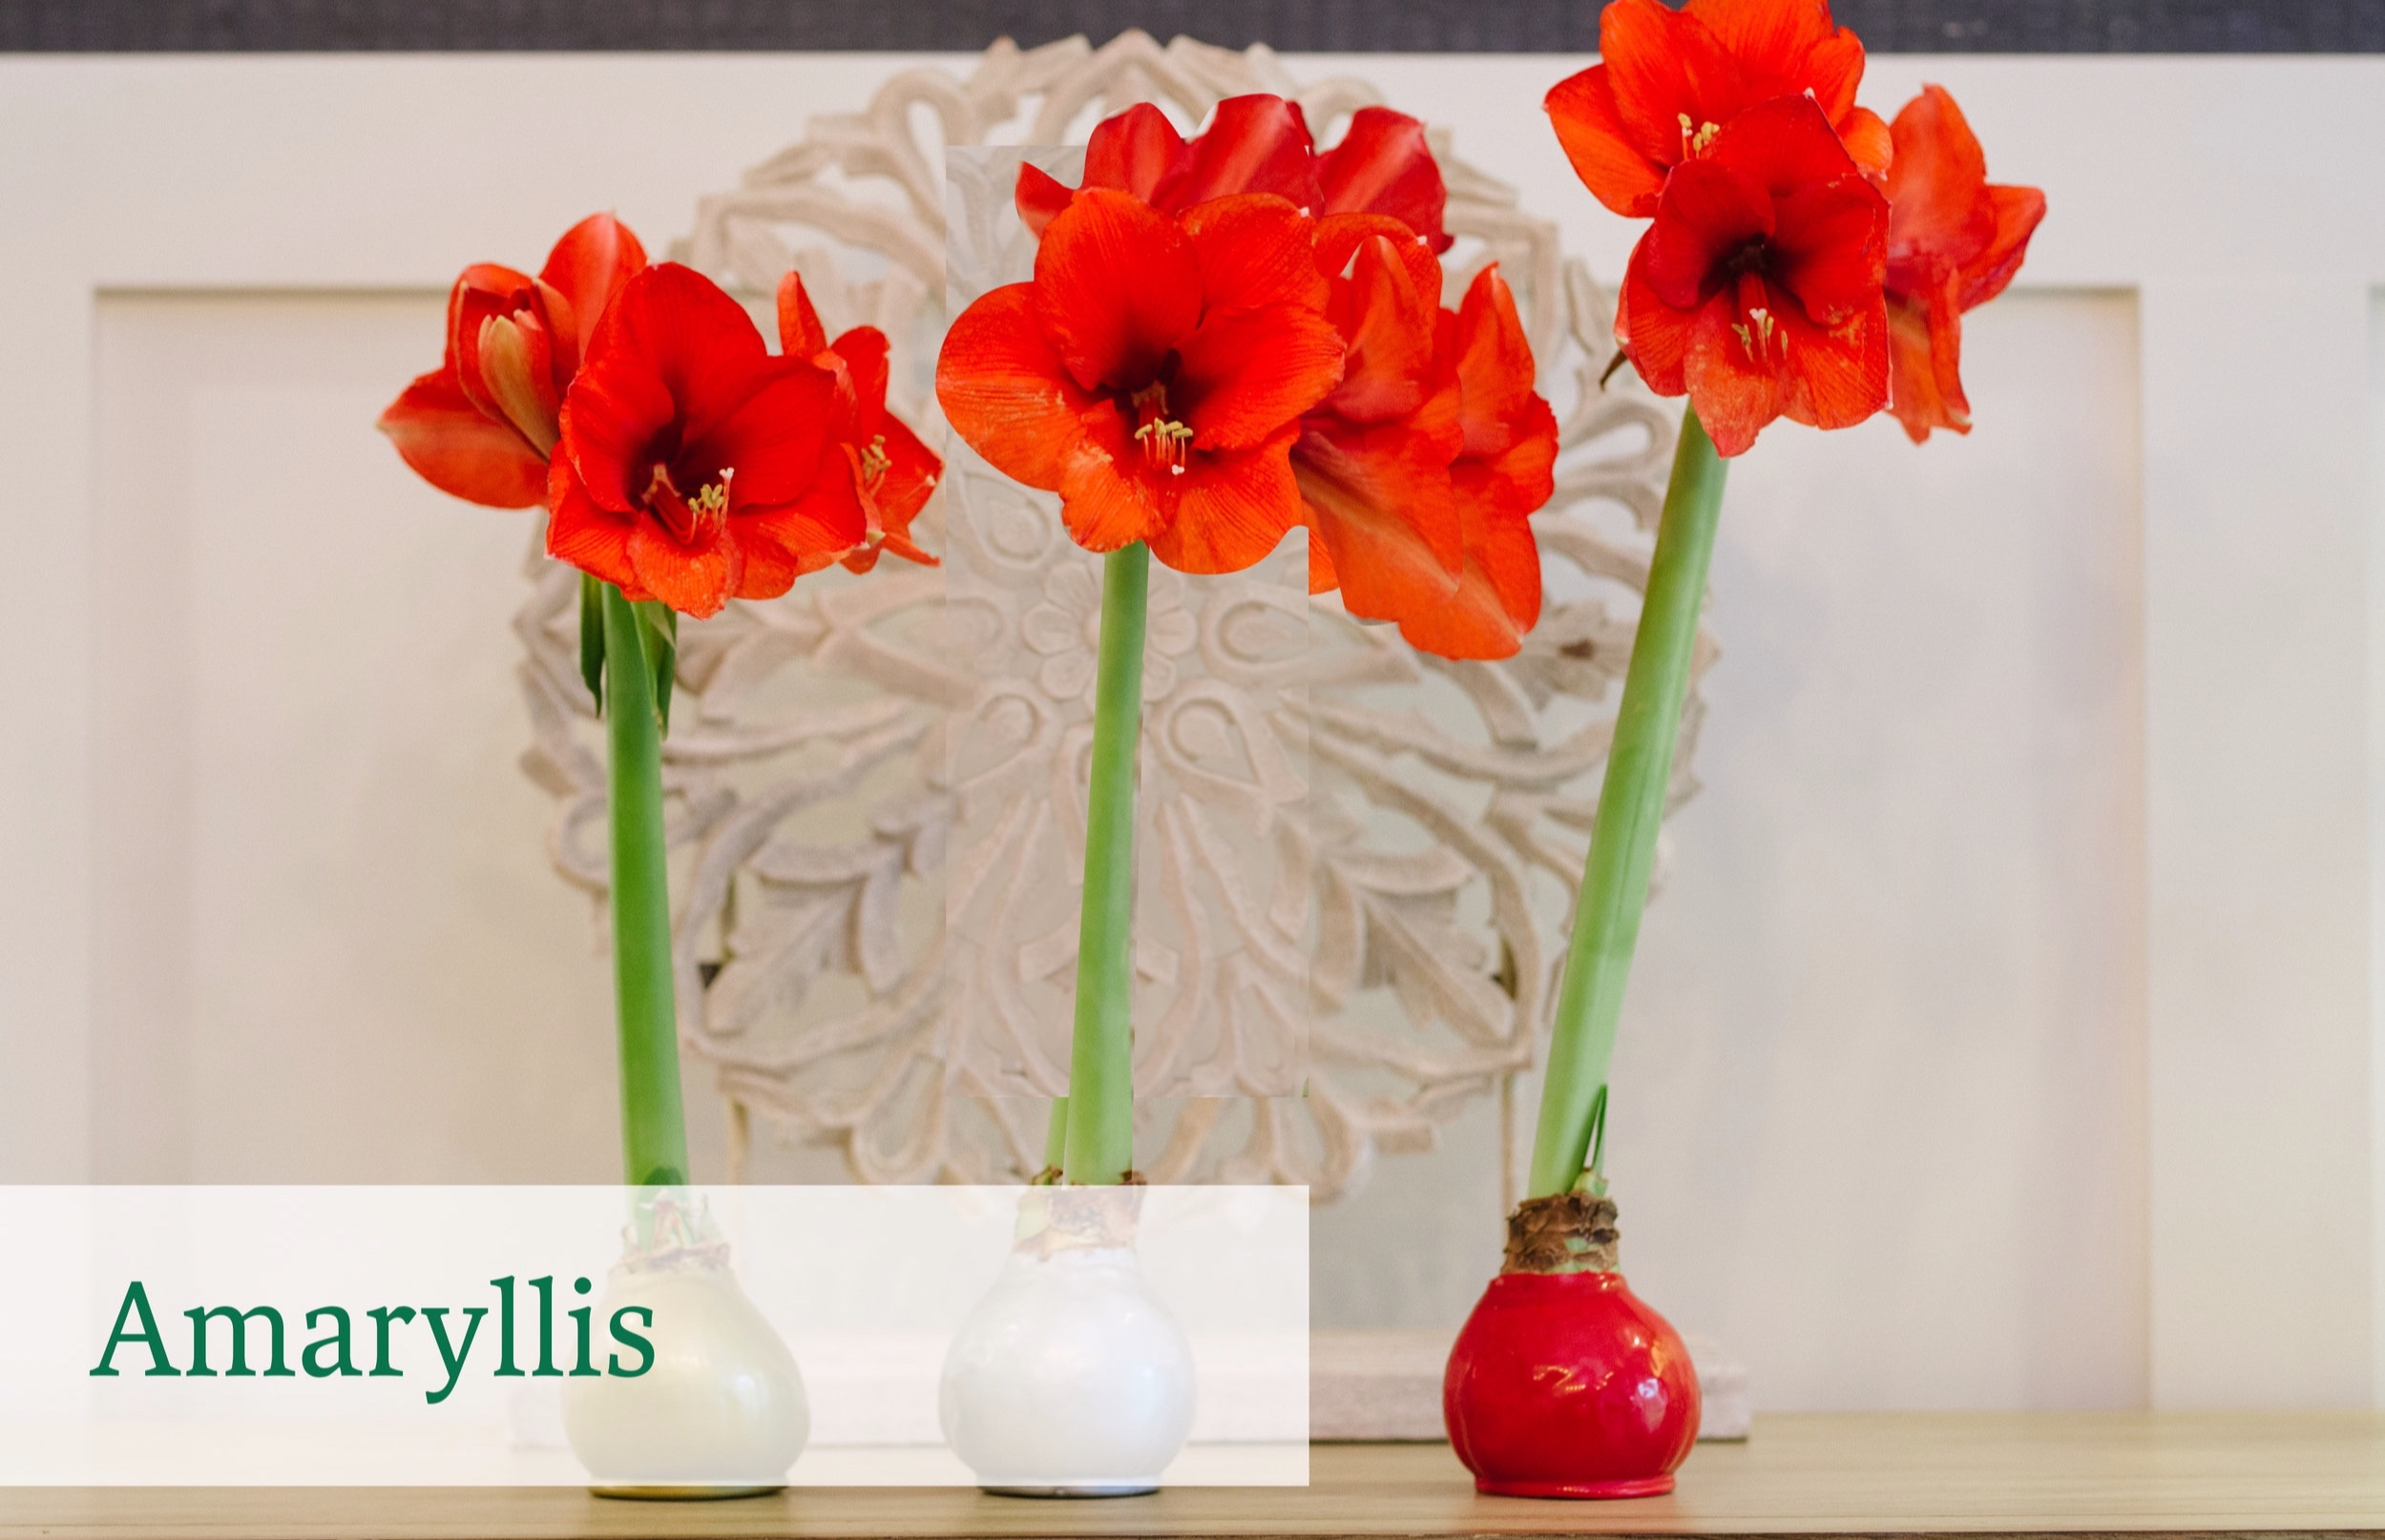 amaryllis+product+home+page.jpg